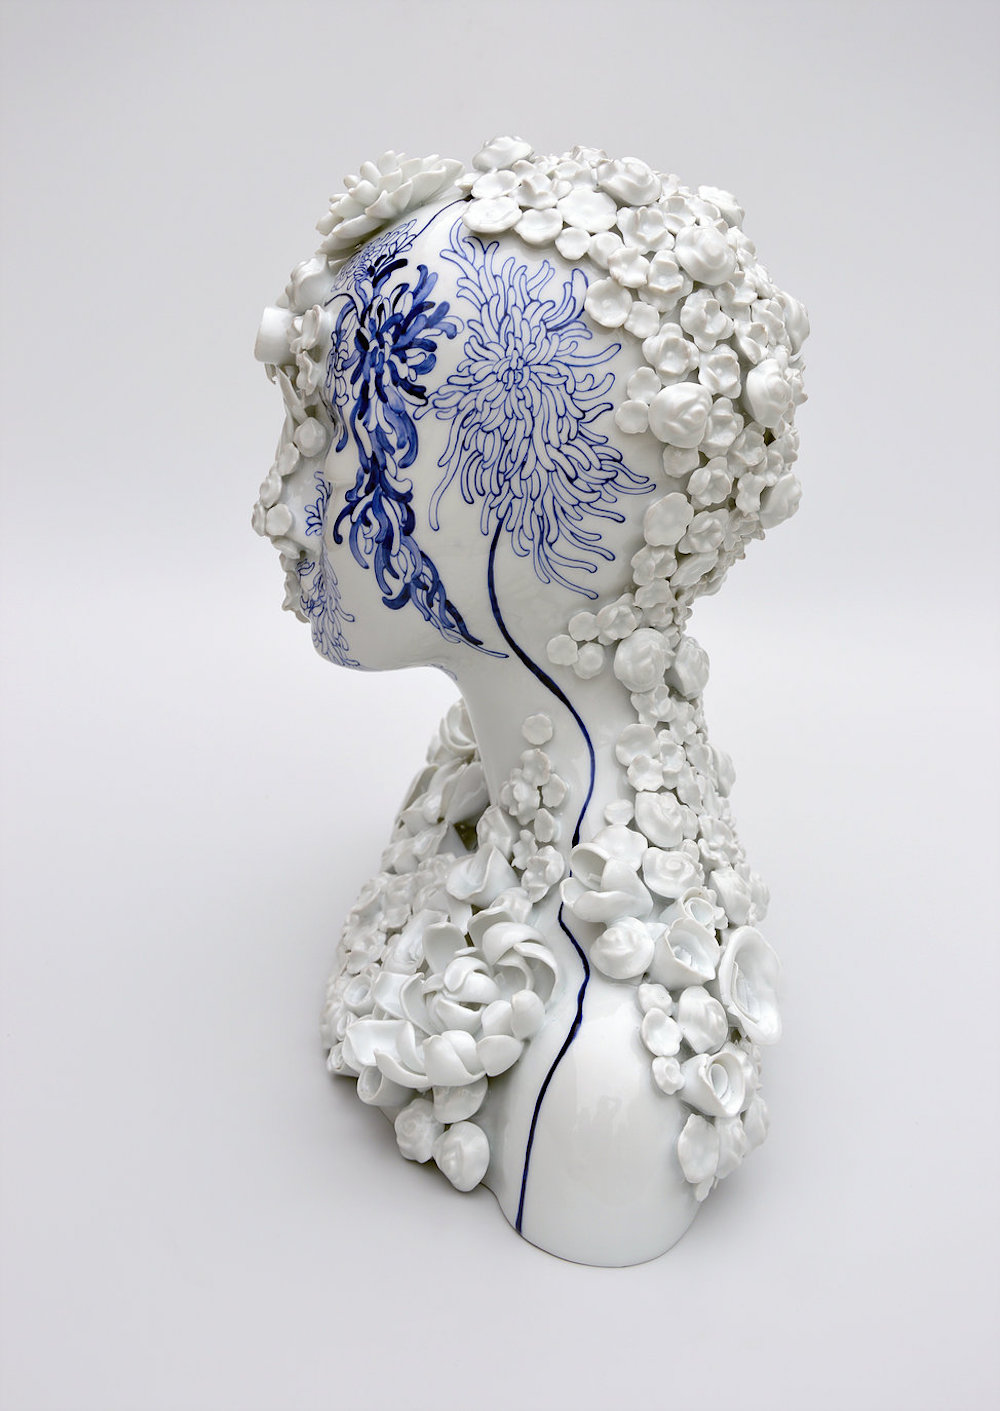 Porcelain Female Forms That Blur the Line Between Humans and Nature by Juliette Clovis